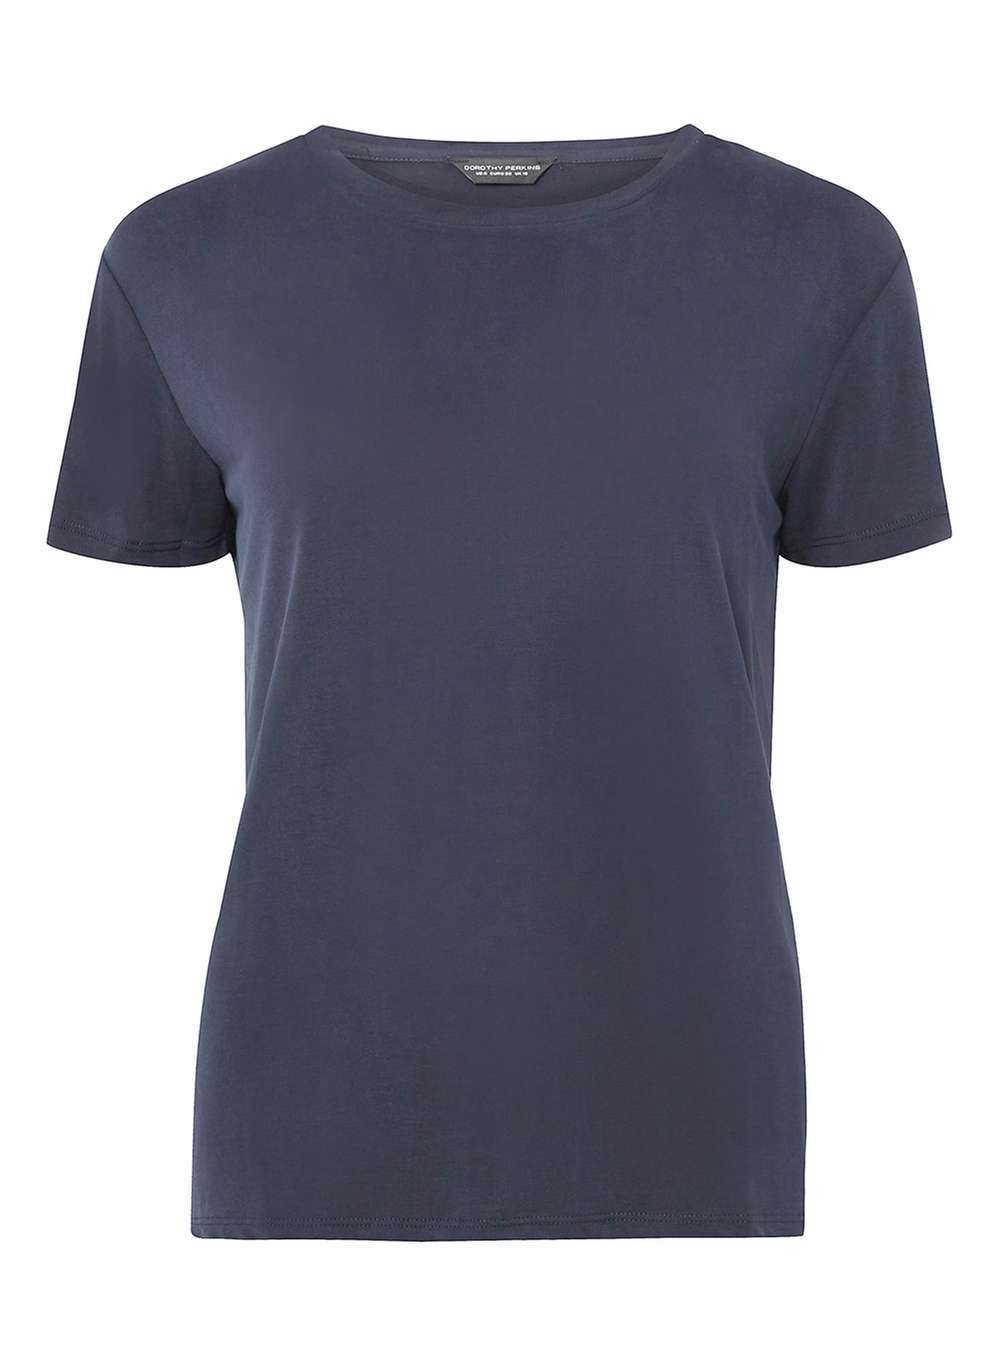 Womens Navy Short Sleeve Cupro T Shirt Navy - neckline: round neck; pattern: plain; style: t-shirt; predominant colour: navy; occasions: casual, work, creative work; length: standard; fibres: polyester/polyamide - mix; fit: body skimming; sleeve length: short sleeve; sleeve style: standard; pattern type: fabric; texture group: jersey - stretchy/drapey; season: a/w 2016